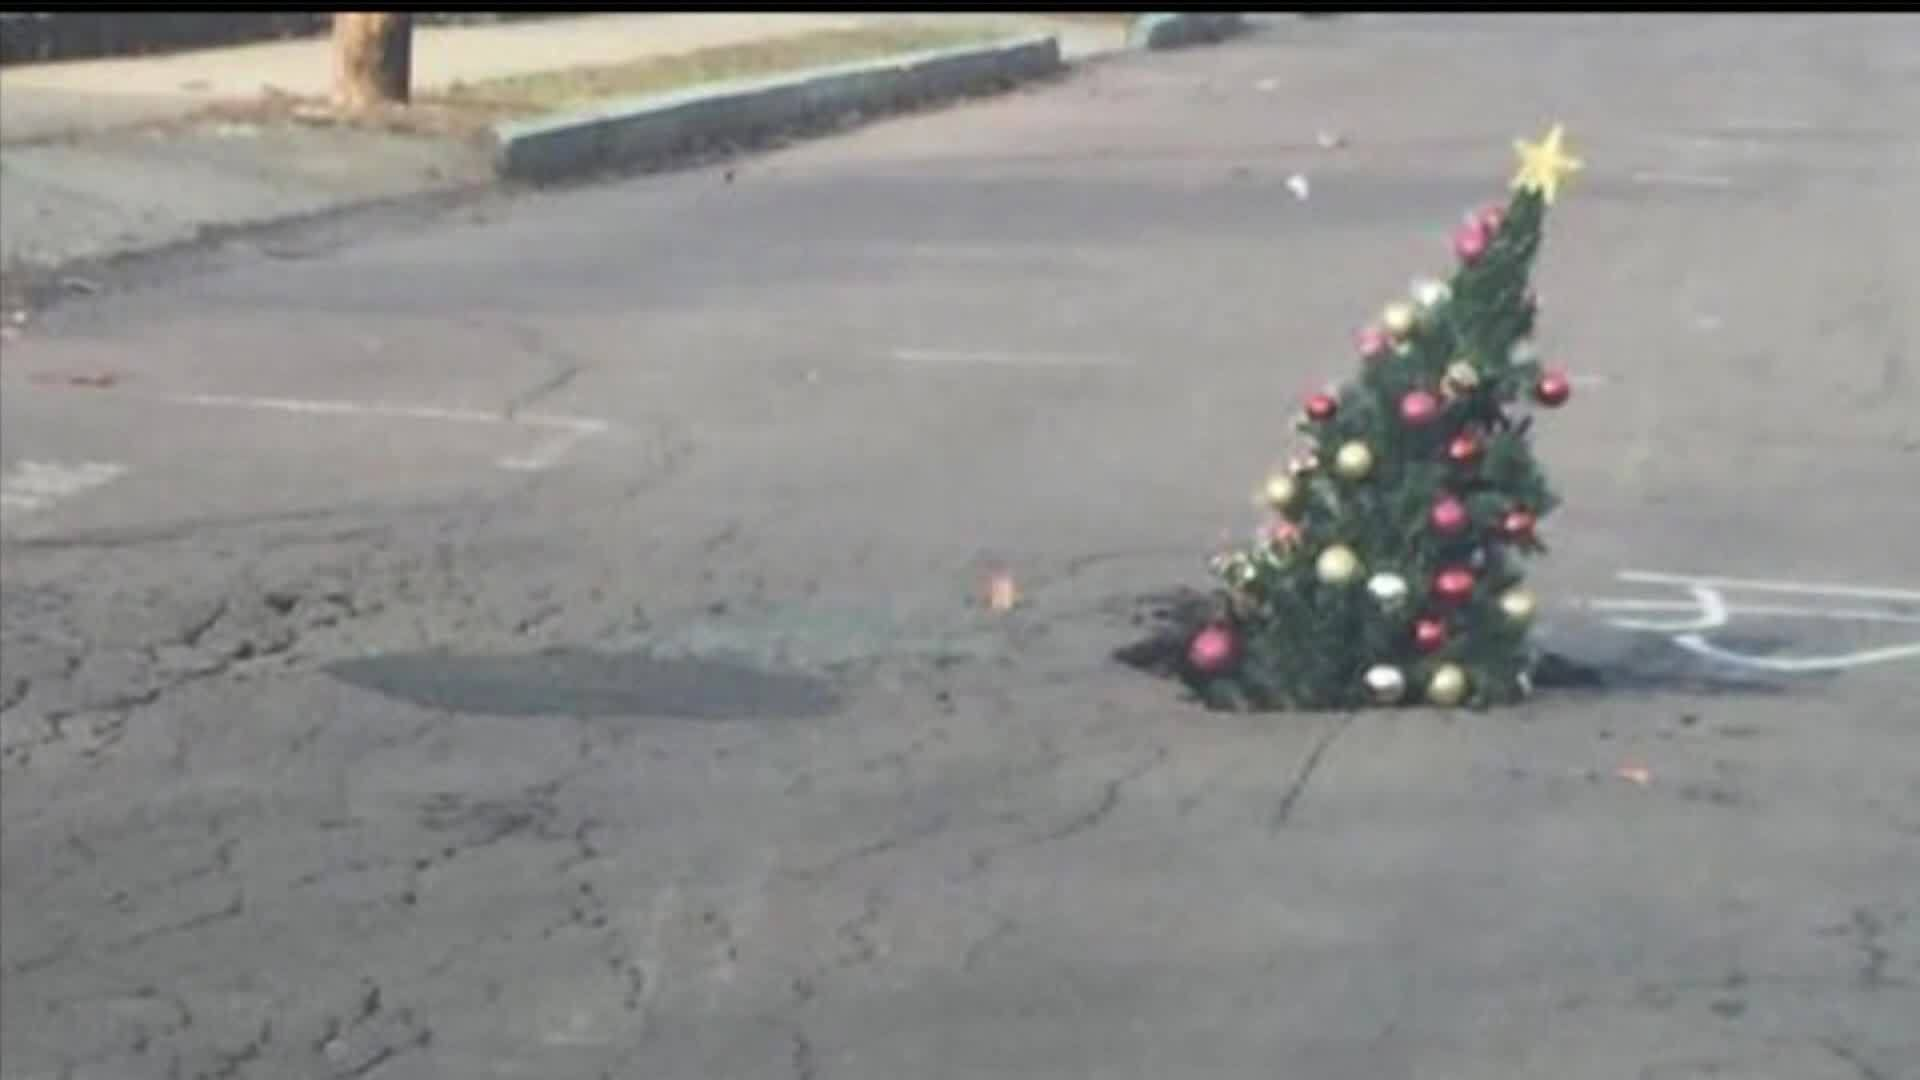 VIDEO: Christmas tree used to warn drivers of hole in street